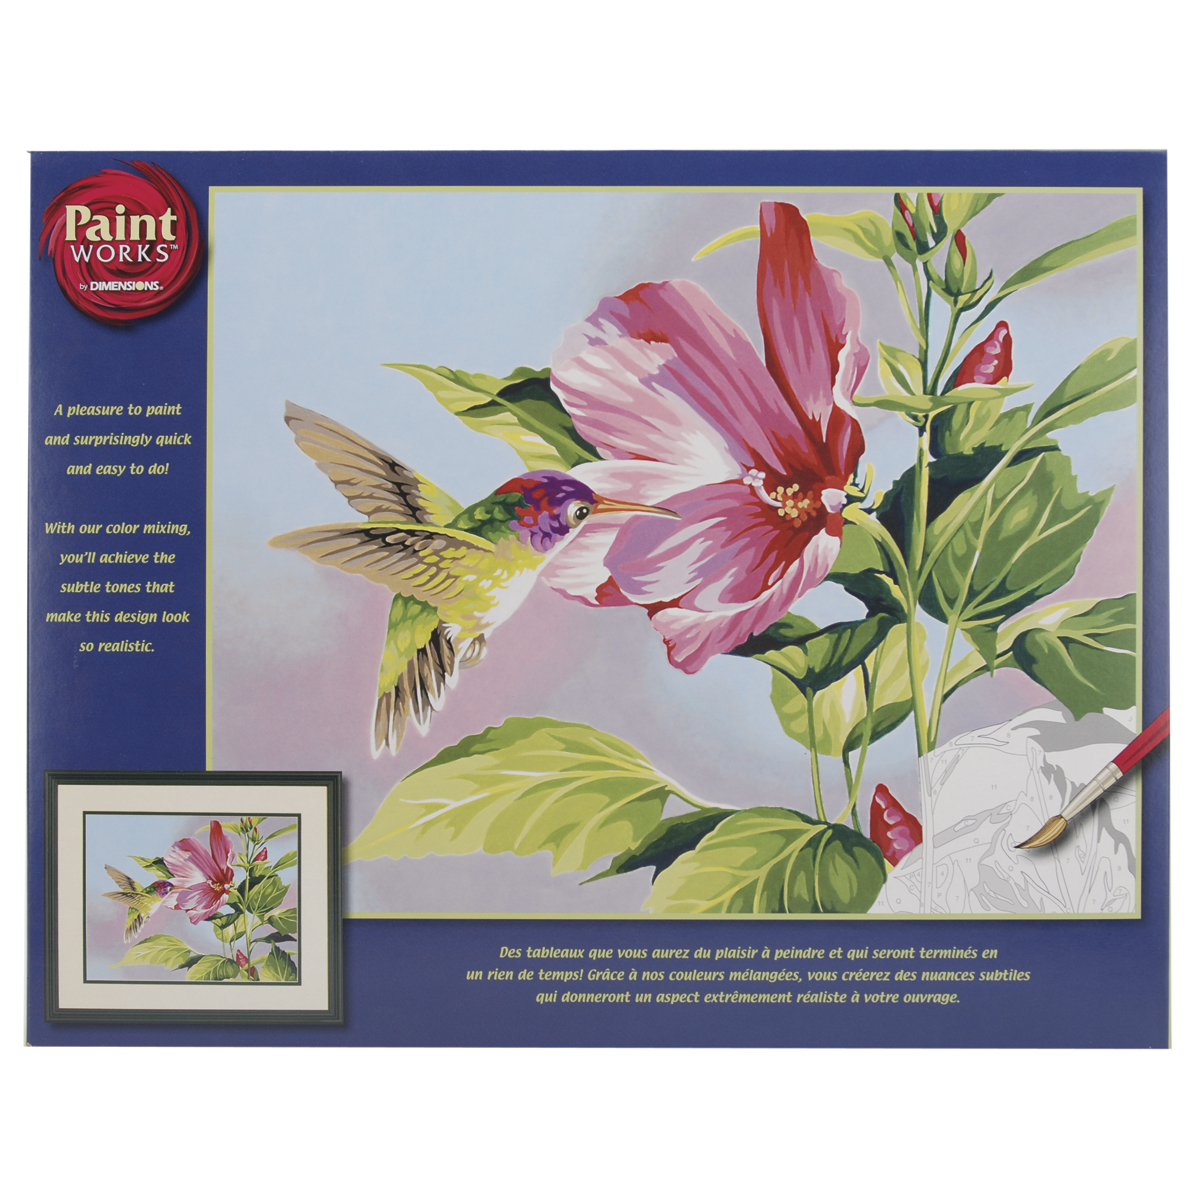 Paint Works Paint By Number Kit 14X11-Hibiscus Hummingbird